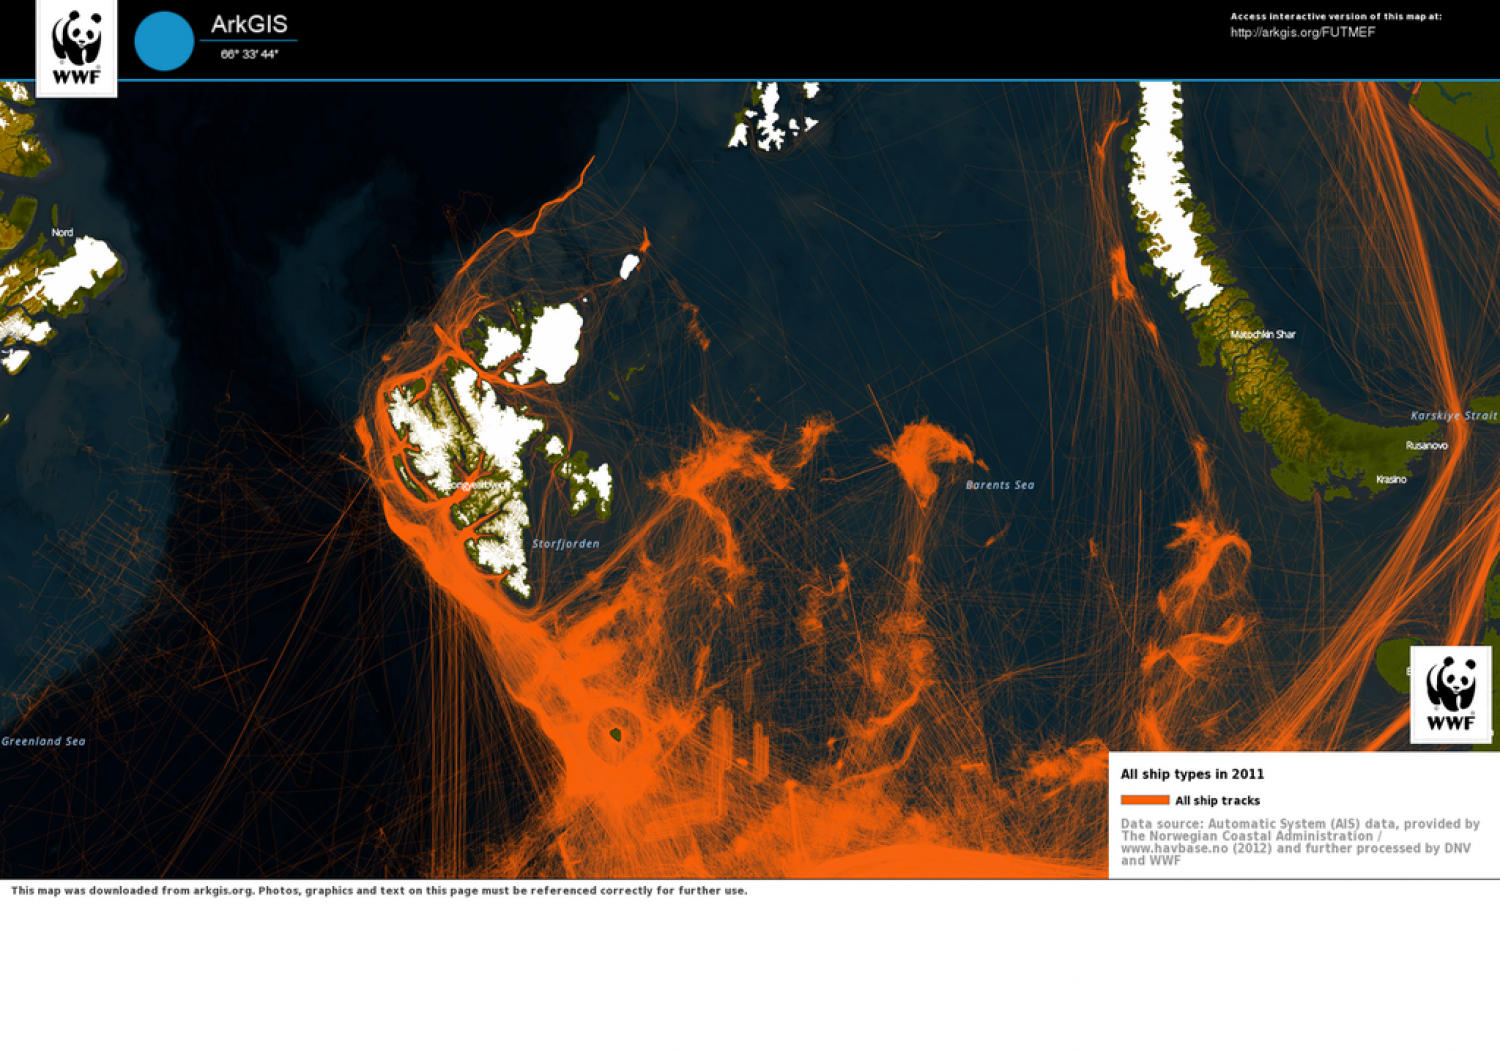 ArkGIS (Arctic Geographical Information System) Infographic